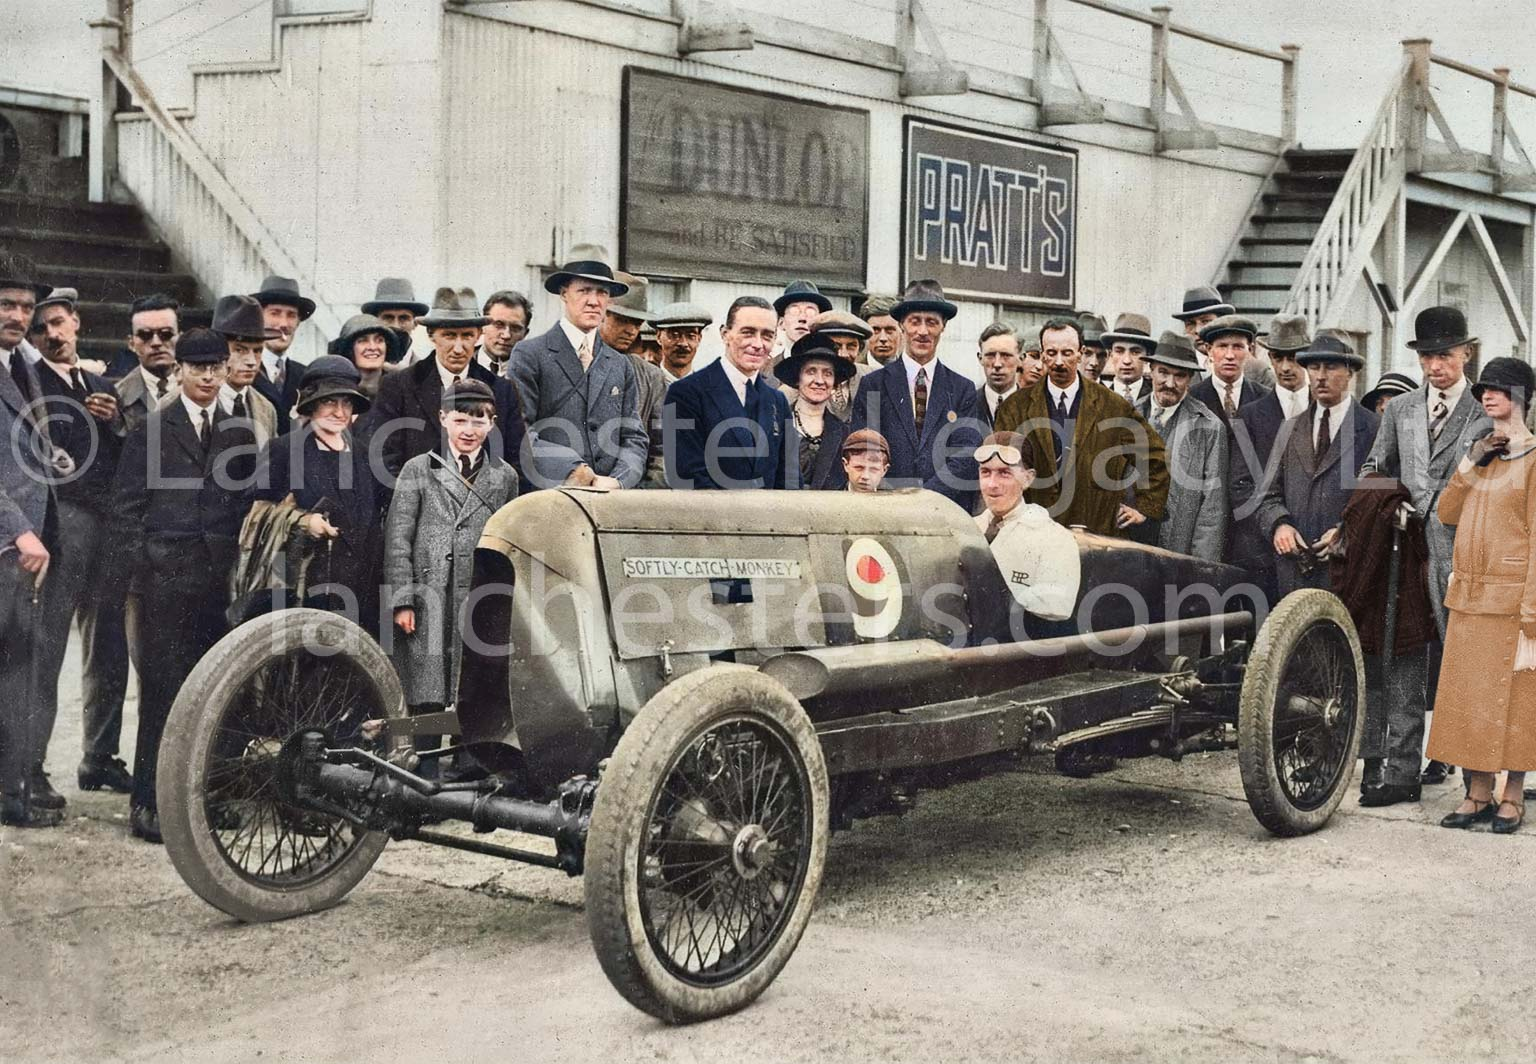 Tommy Hann's Lanchester 25hp Racing Car 'Softly Softly' at Brooklands